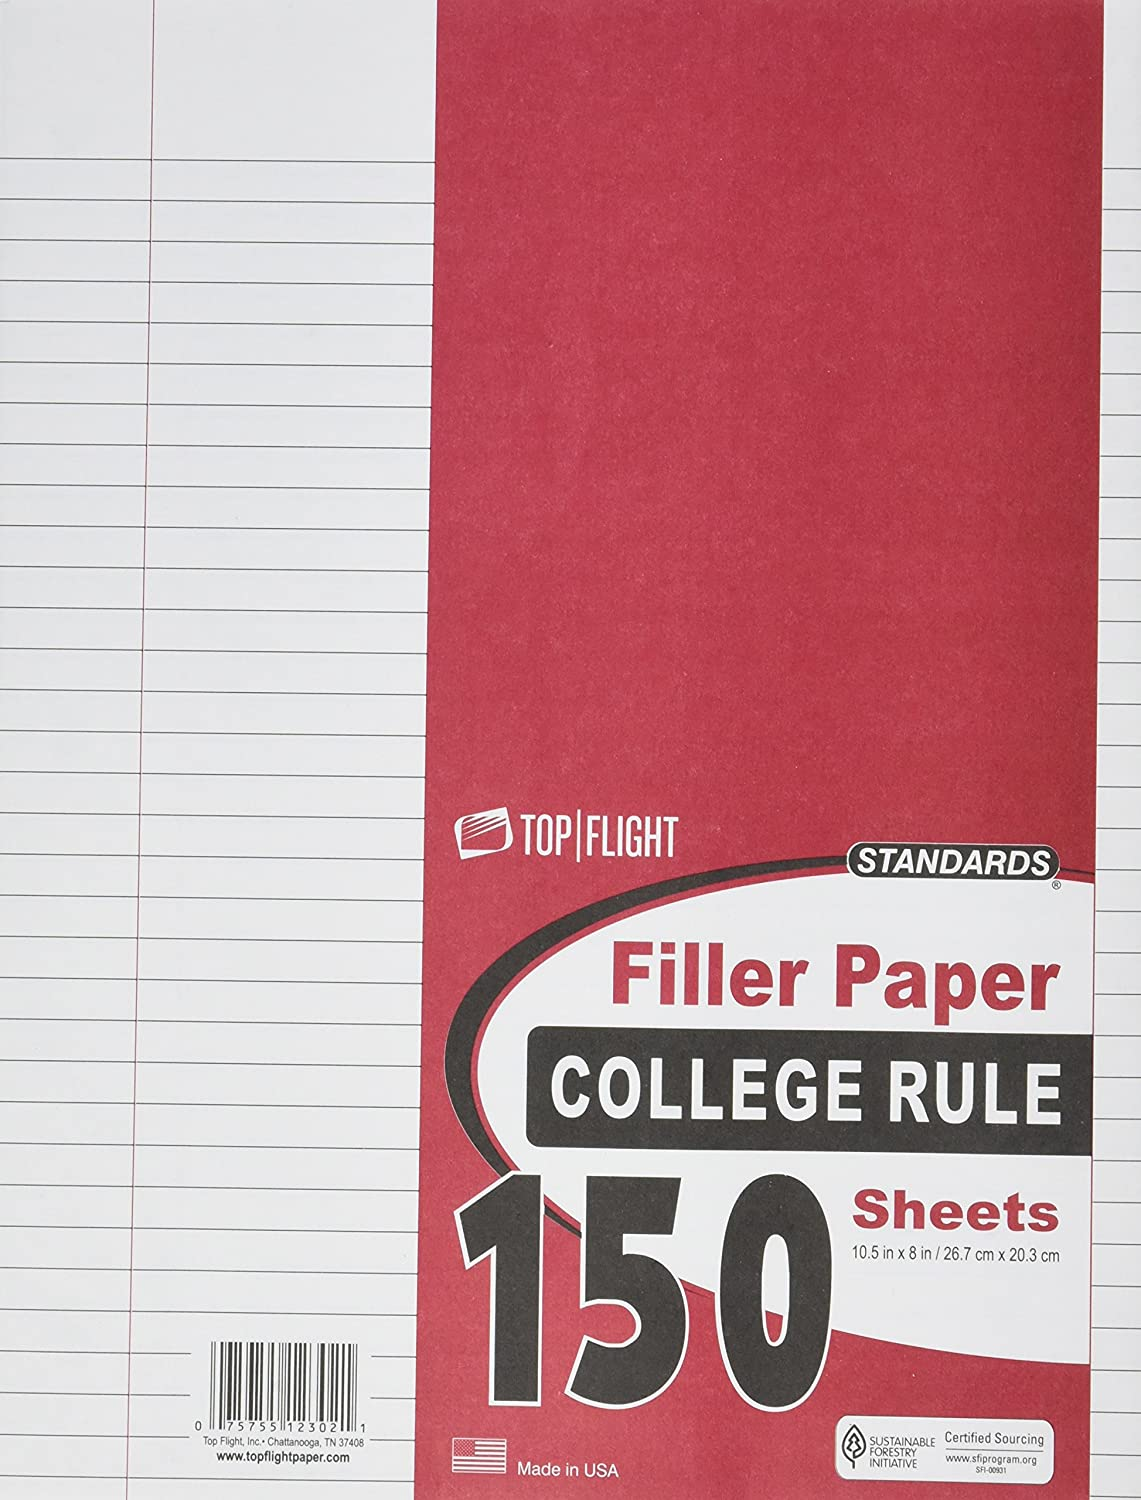 Top Flight 12302 Filler Paper, 10.5 x 8-Inches, College Rule, 150 Sheets (White) Topflight Inc.